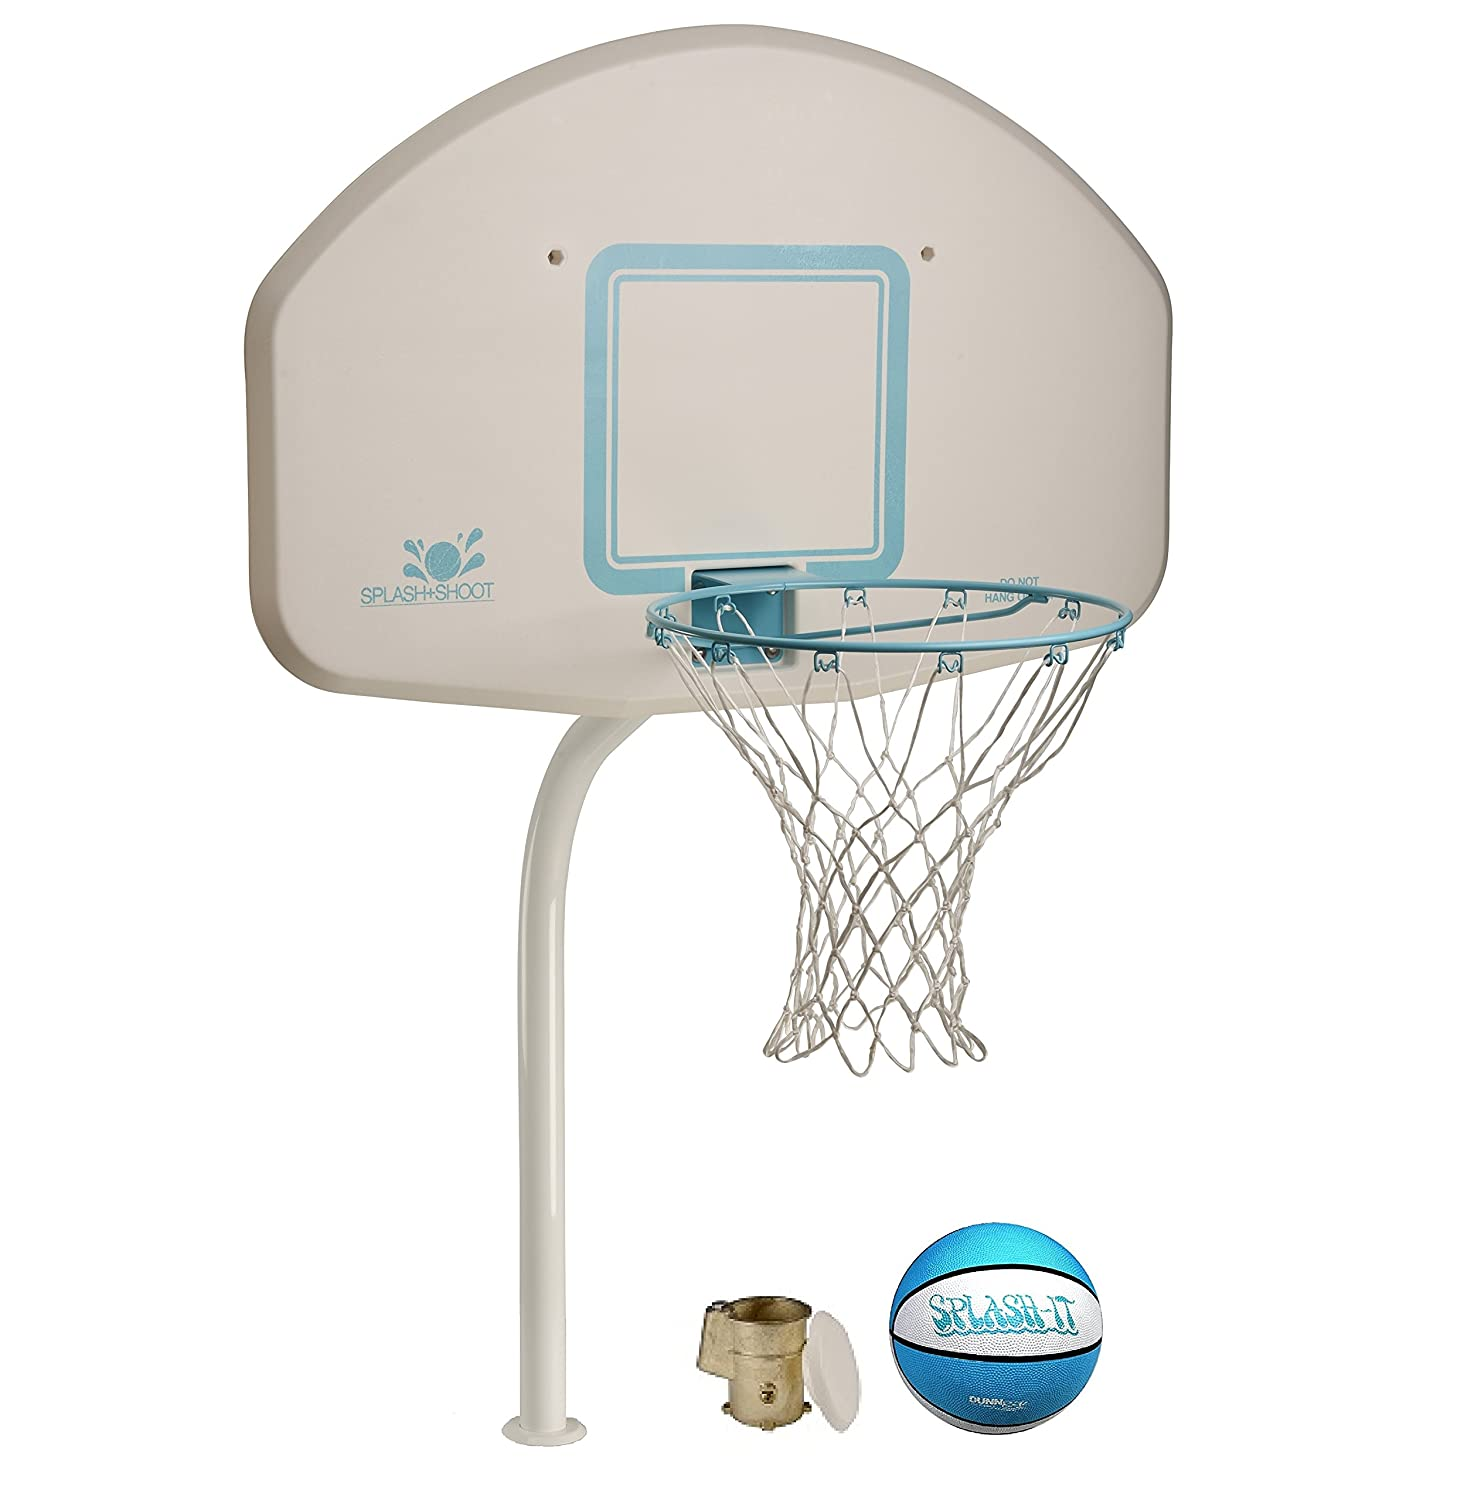 Buy Dunnrite DeckShoot Pool Basketball Hoop with Stainless Steel Rim and  Brass Anchor (DMB200BR Stainless) Online at Low Prices in India - Amazon.in